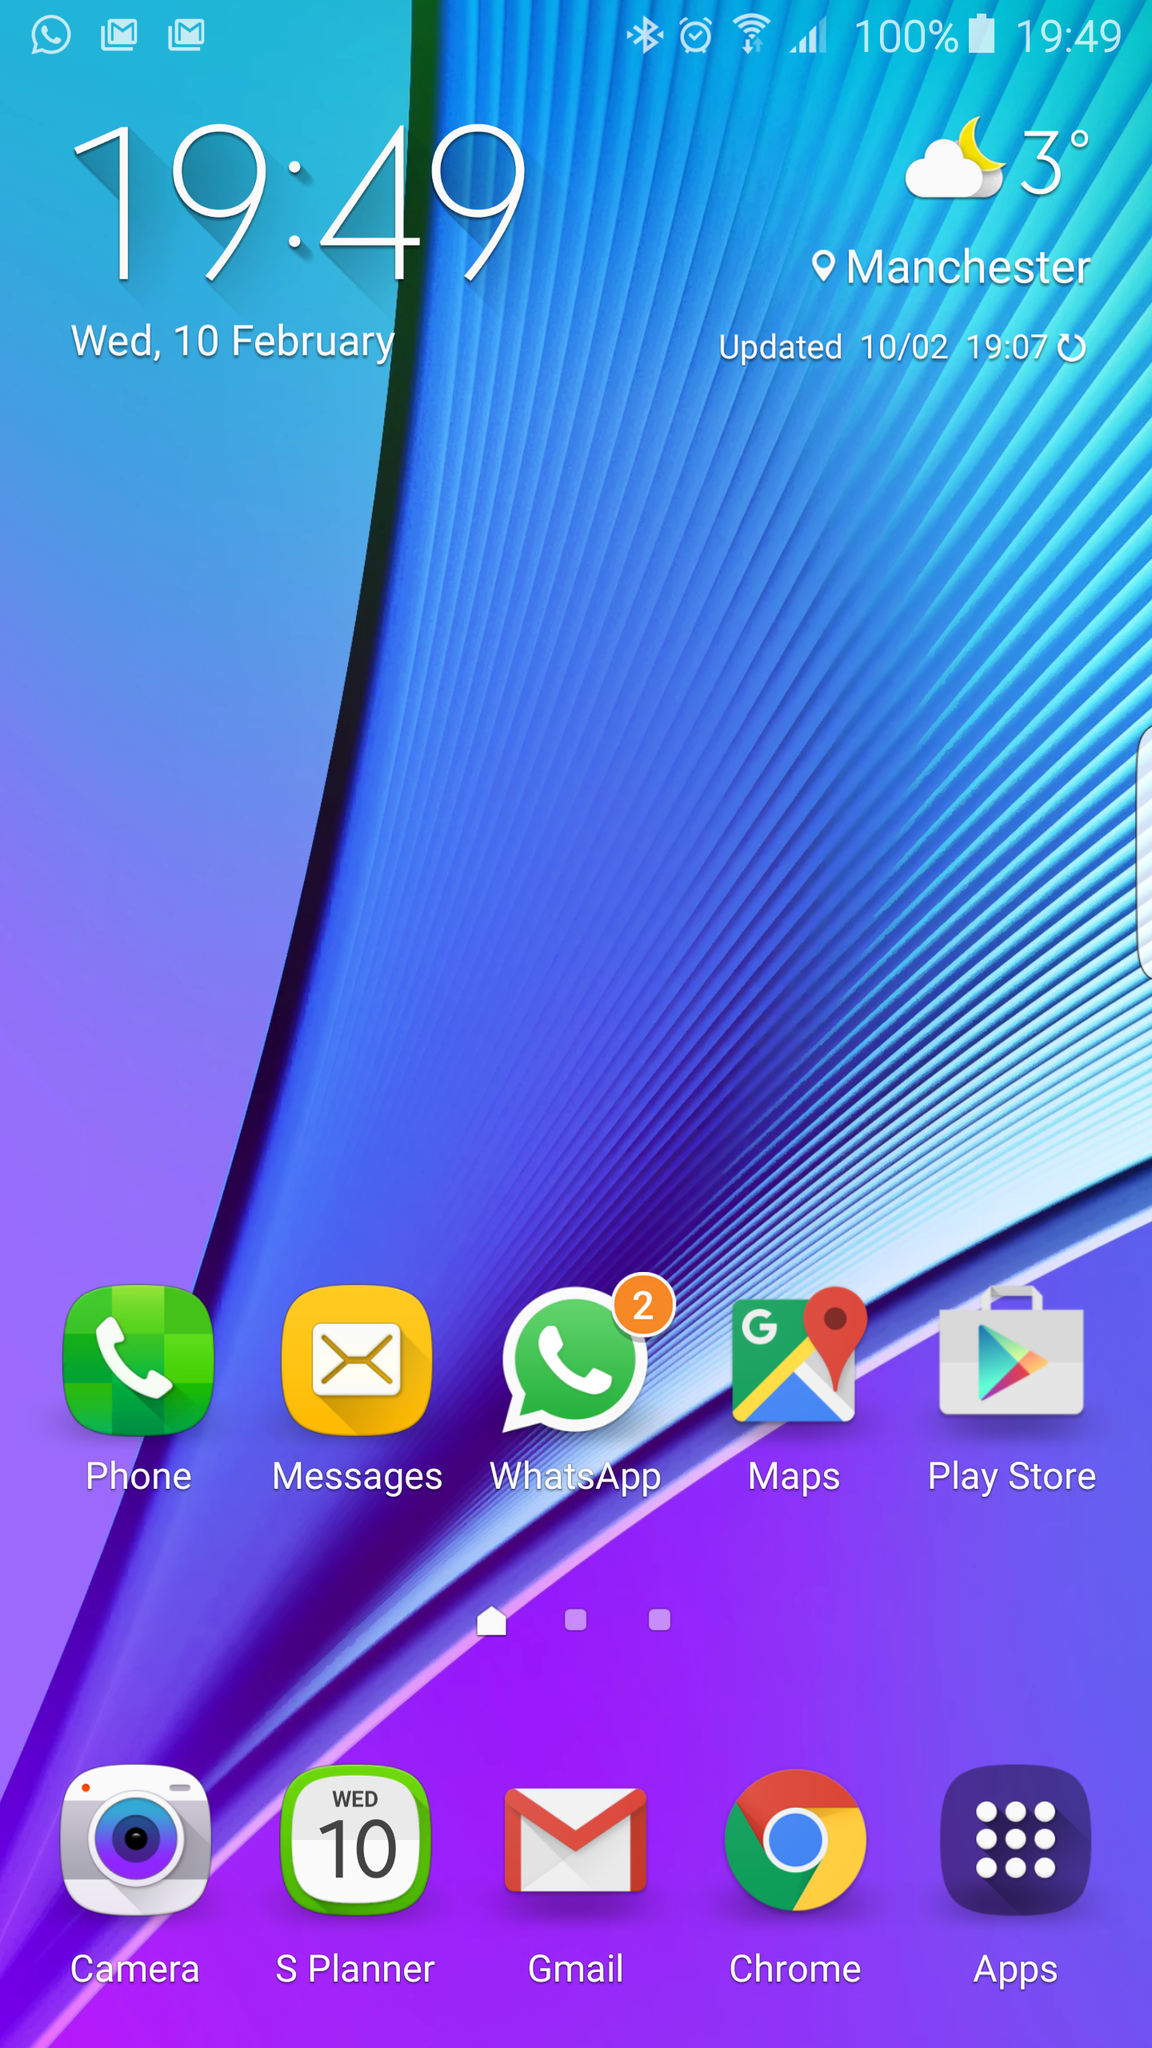 Iphone Wallpaper Icon Template Home Screen Layouts And How To Theme Them Android Central